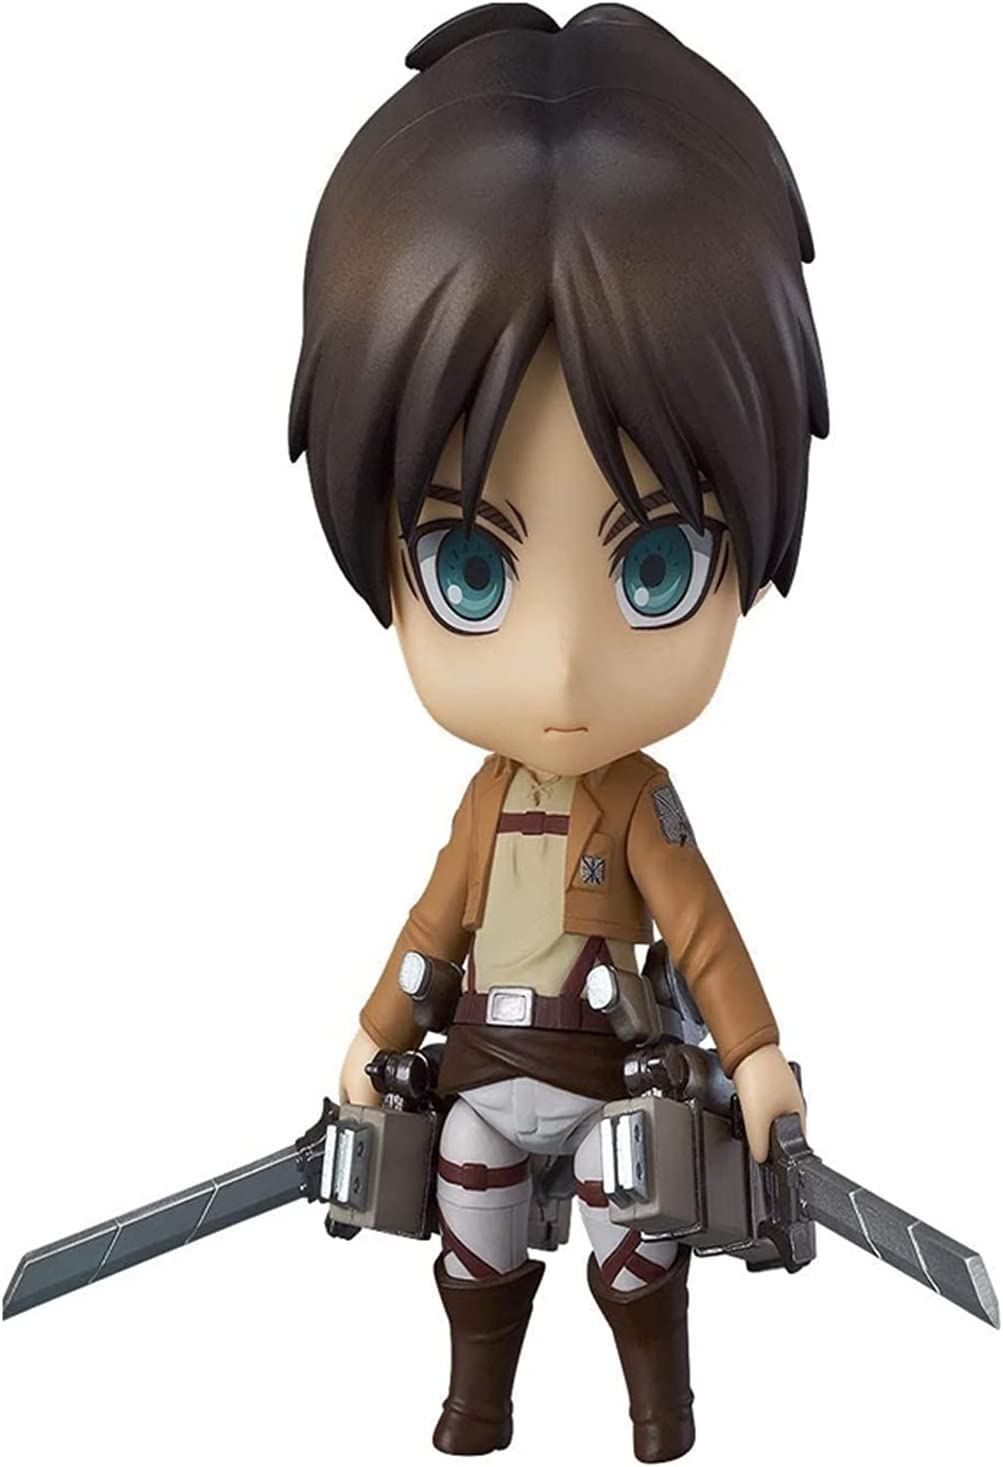 Sale price YZYN-BJ 2021 autumn and winter new Anime Action Figure Toy Interesting Model PVC Toys Cute